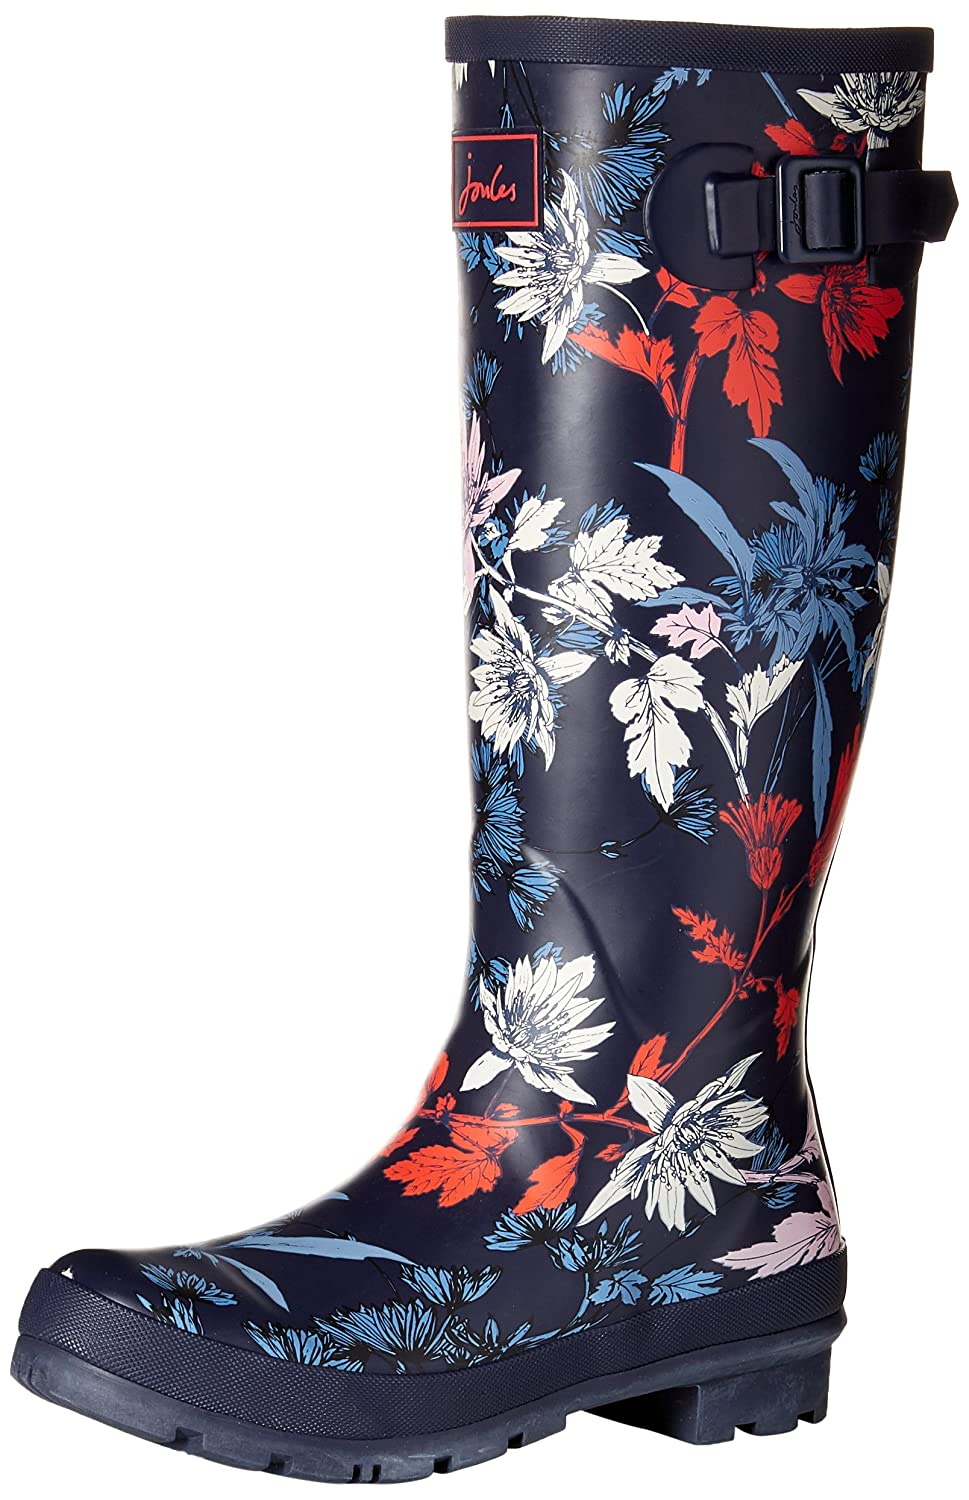 Joules Women's Welly Print Rain Boot B06XGLNML9 8 B(M) US|French Navy Fay Floral